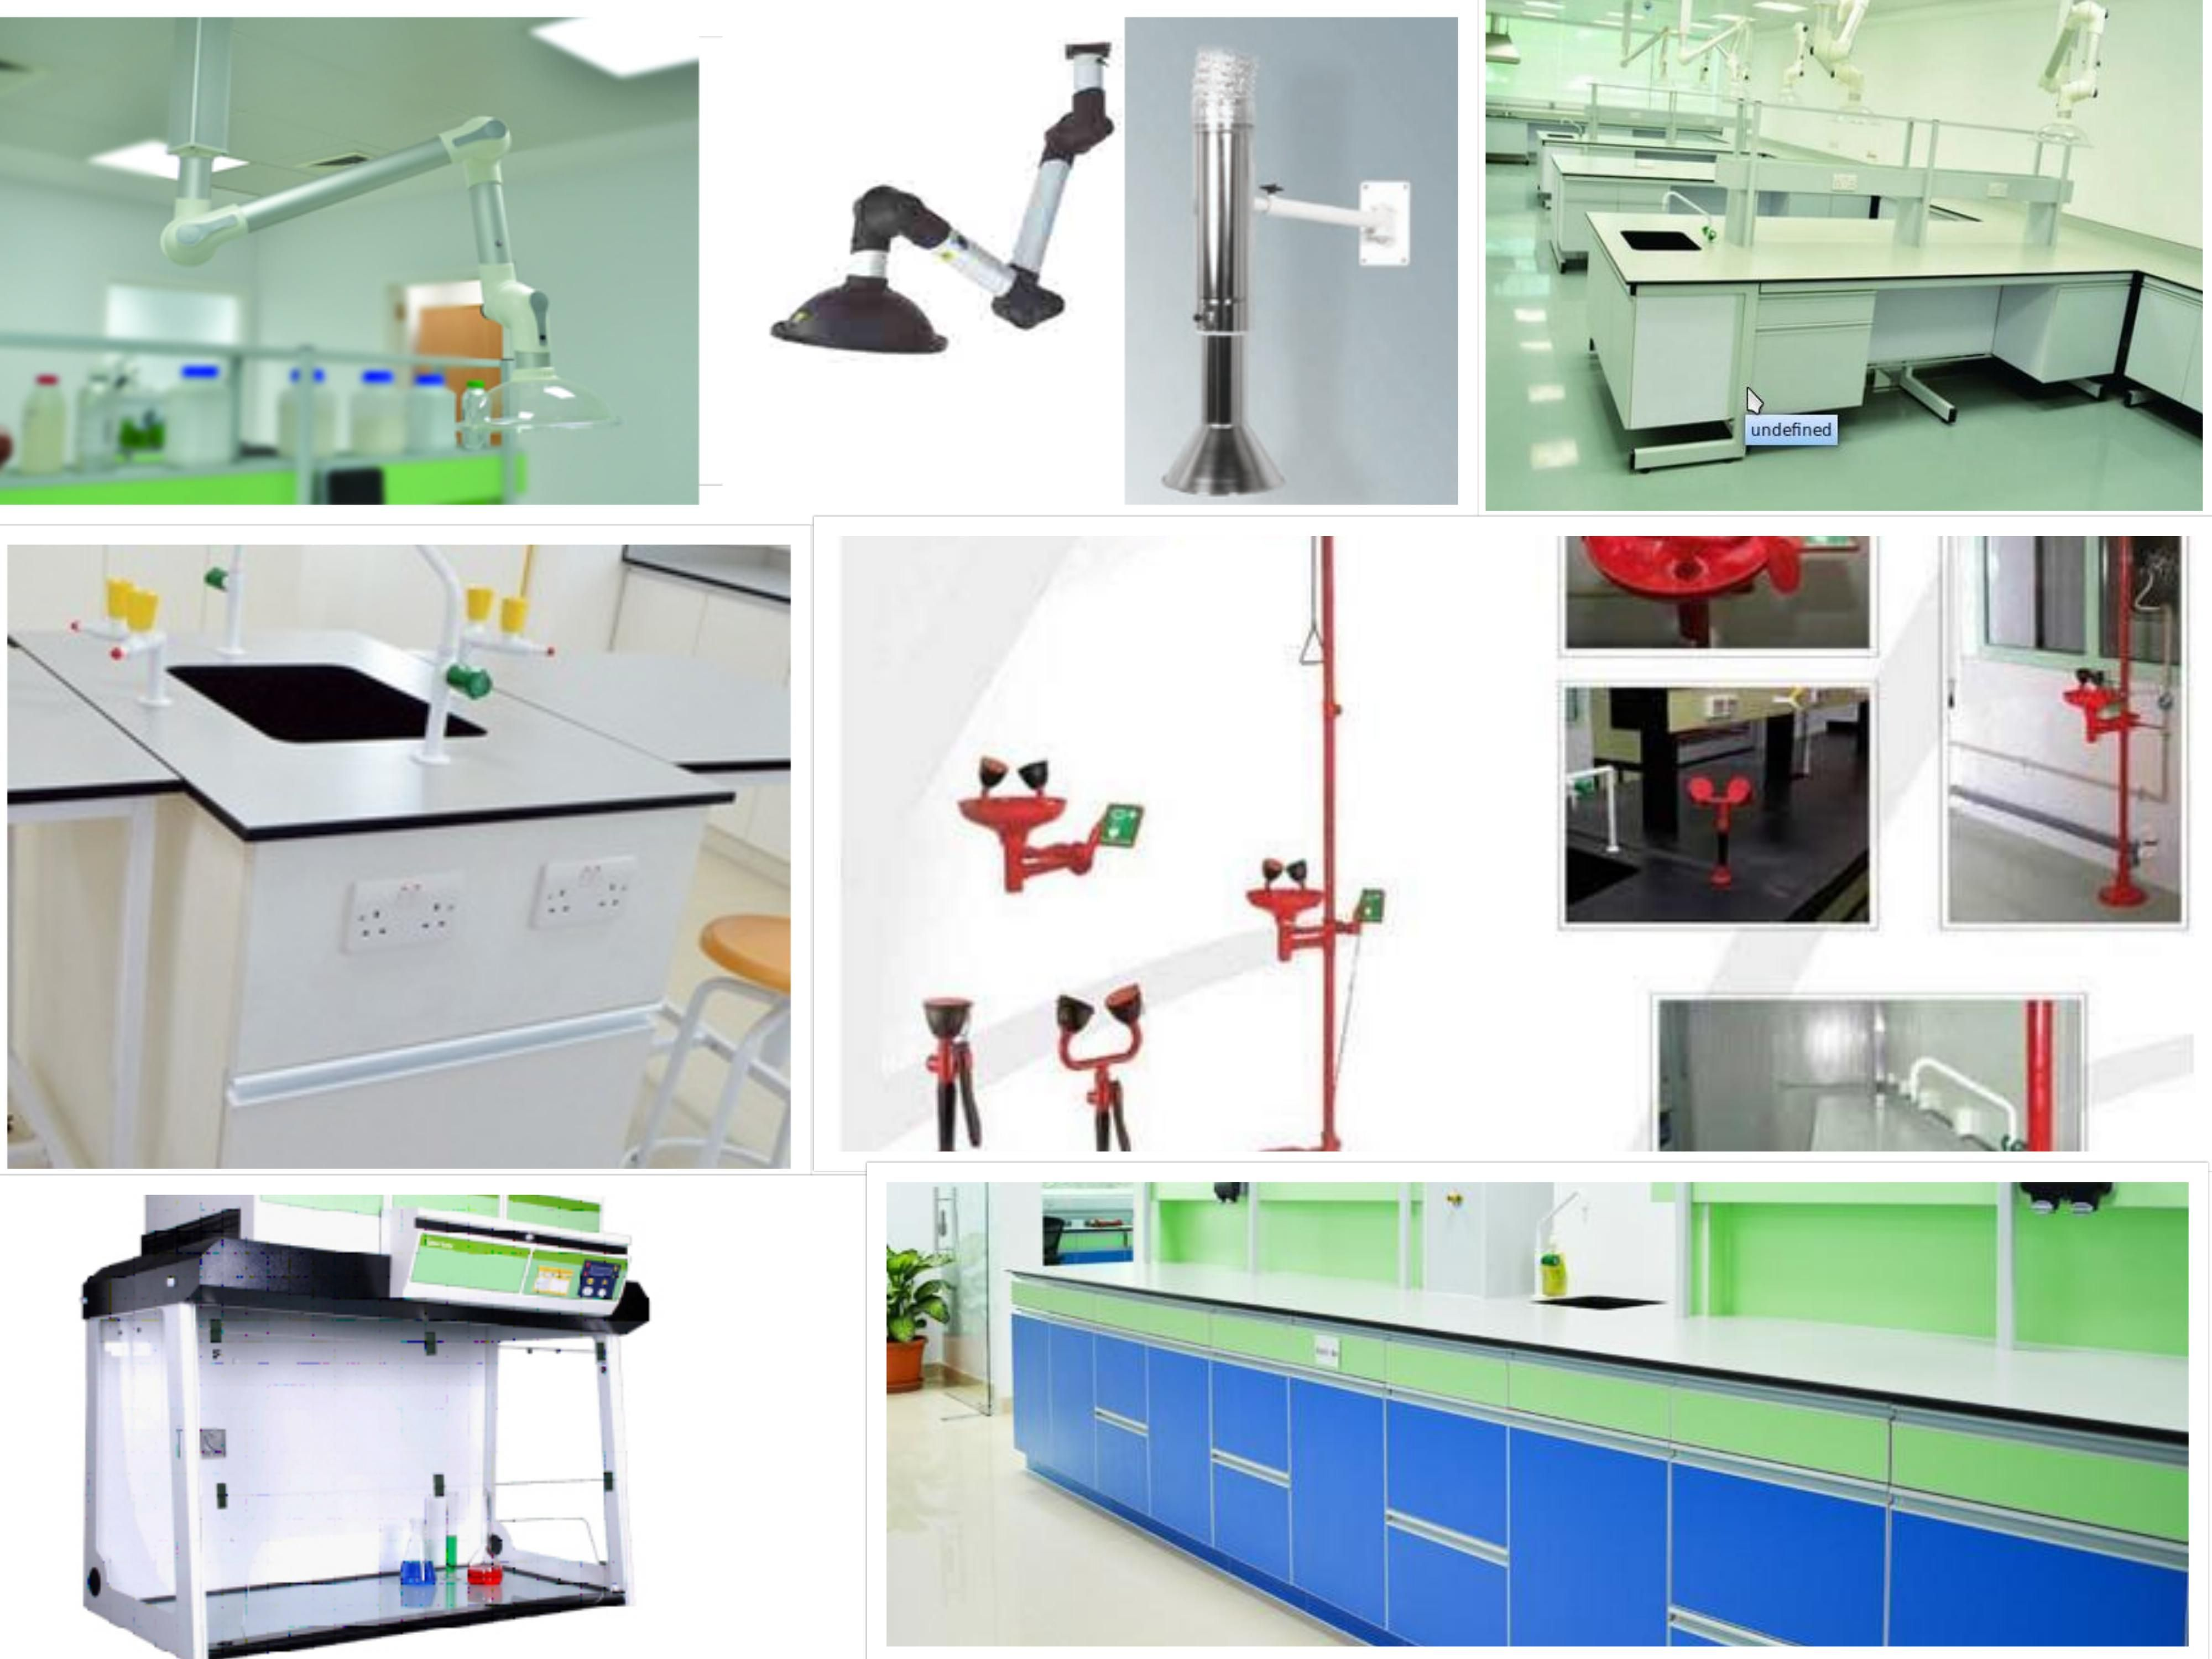 Zeba Pioneers In Manufacturing Certain Laboratory Supplies Our Significant Products Include Extract Systems Labfitting Lab Workbench Furniture Wall Bench